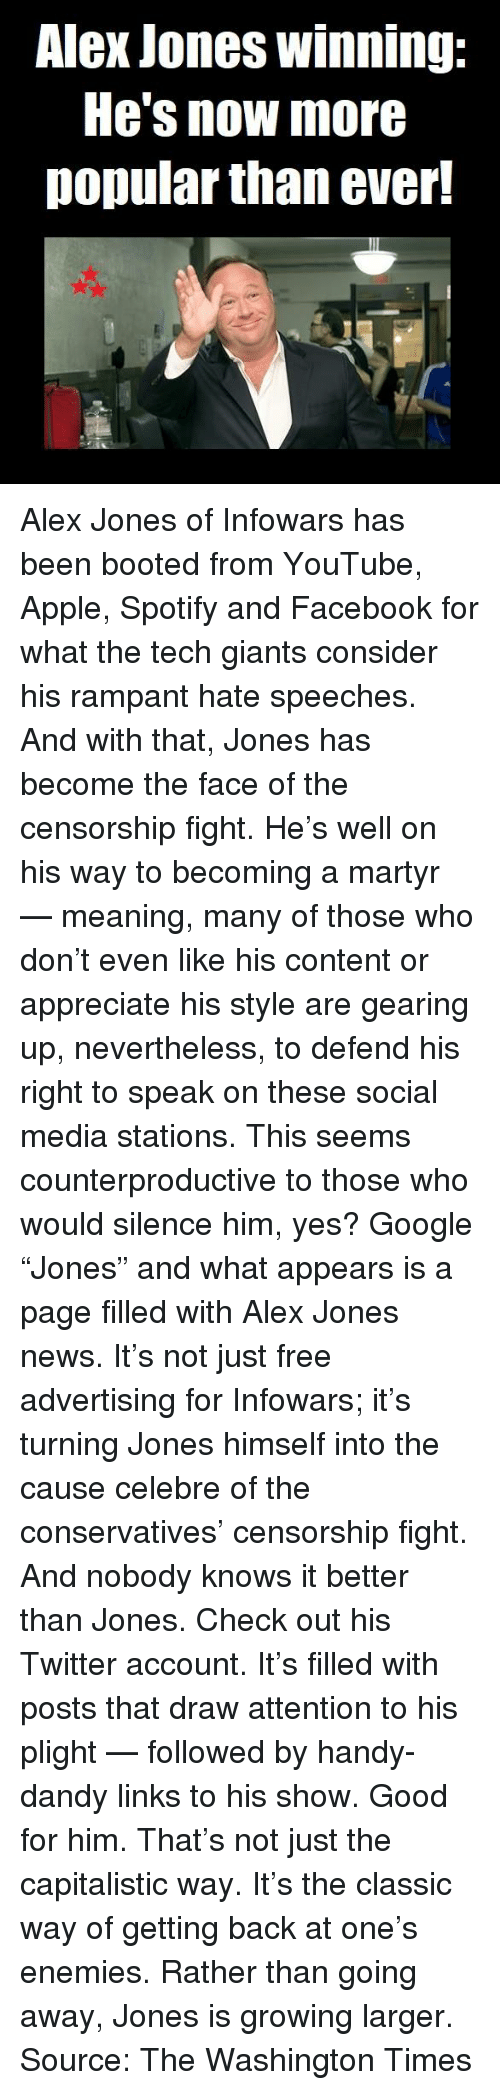 "Apple, Facebook, and Google: Alex Jones winning:  He's now more  popular than ever! Alex Jones of Infowars has been booted from YouTube, Apple, Spotify and Facebook for what the tech giants consider his rampant hate speeches. And with that, Jones has become the face of the censorship fight.  He's well on his way to becoming a martyr — meaning, many of those who don't even like his content or appreciate his style are gearing up, nevertheless, to defend his right to speak on these social media stations.  This seems counterproductive to those who would silence him, yes? Google ""Jones"" and what appears is a page filled with Alex Jones news. It's not just free advertising for Infowars; it's turning Jones himself into the cause celebre of the conservatives' censorship fight.  And nobody knows it better than Jones. Check out his Twitter account. It's filled with posts that draw attention to his plight — followed by handy-dandy links to his show.   Good for him. That's not just the capitalistic way. It's the classic way of getting back at one's enemies. Rather than going away, Jones is growing larger.  Source: The Washington Times"